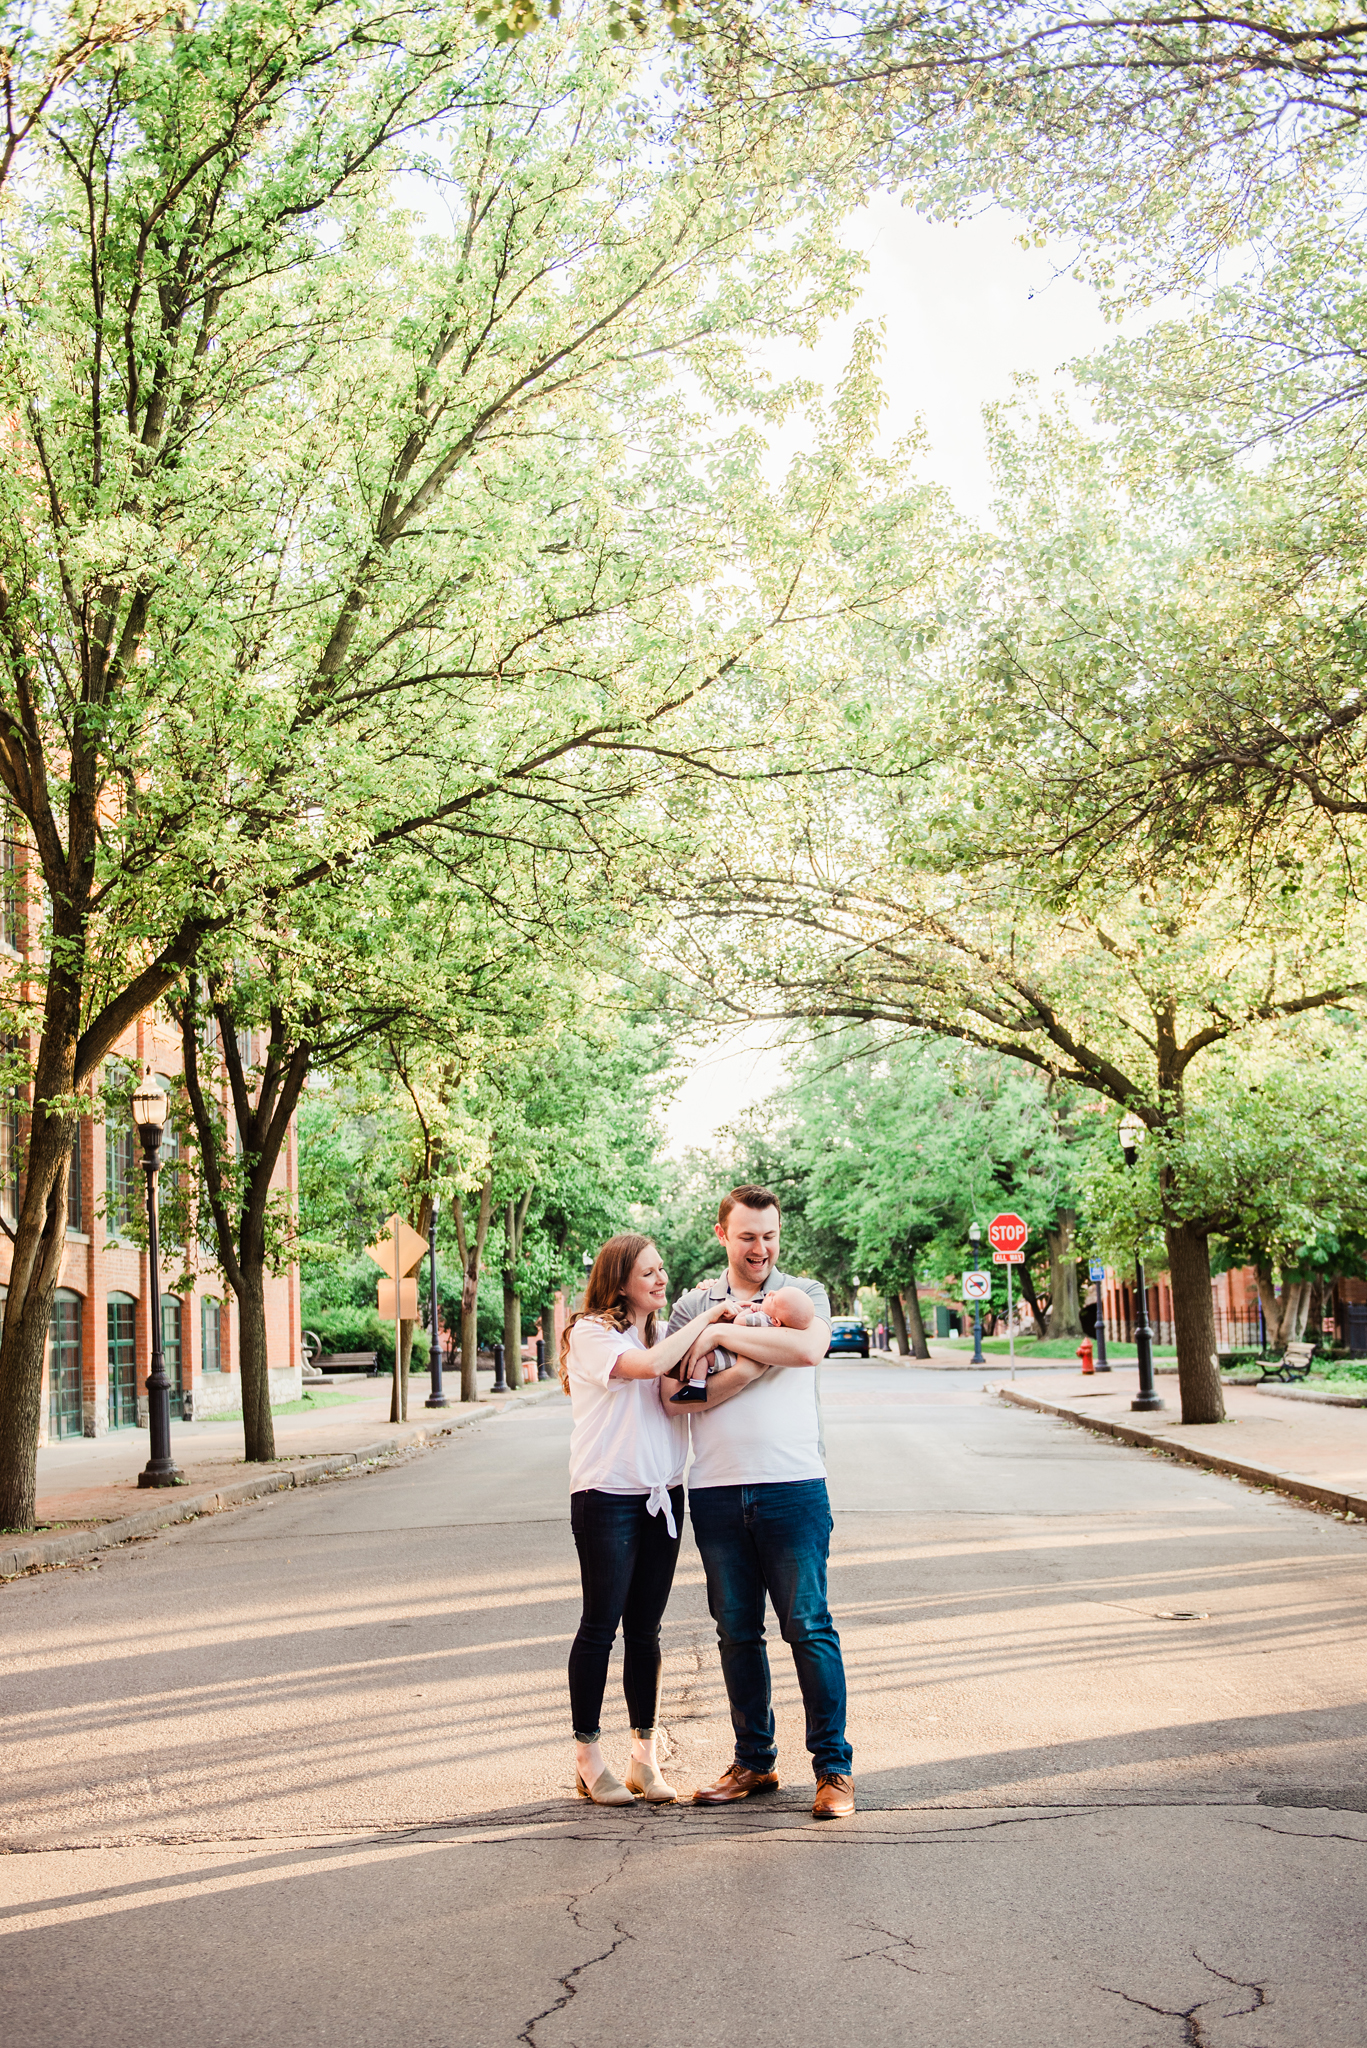 Franklin_Square_Park_Syracuse_Engagement_Session_JILL_STUDIO_Rochester_NY_Photographer_DSC_4053.jpg